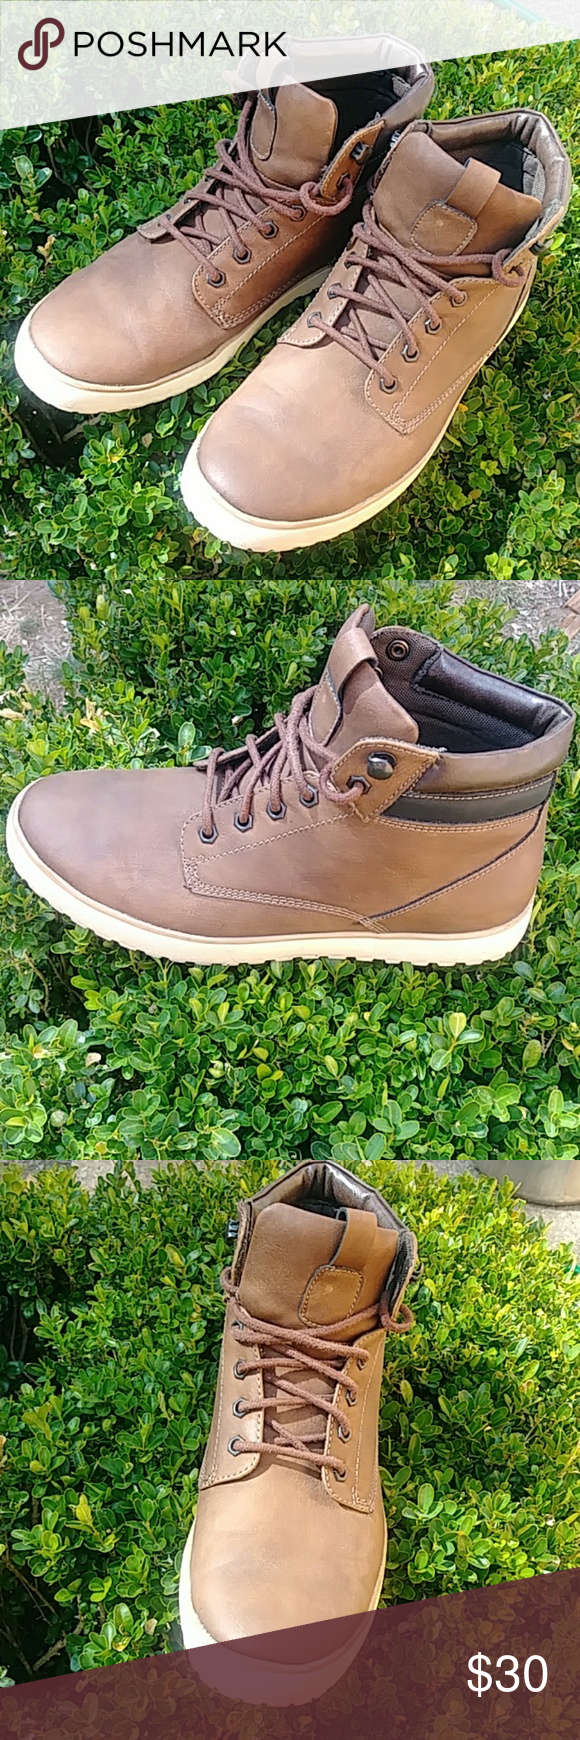 Men's Joey Casual Chukka Boot BY Target